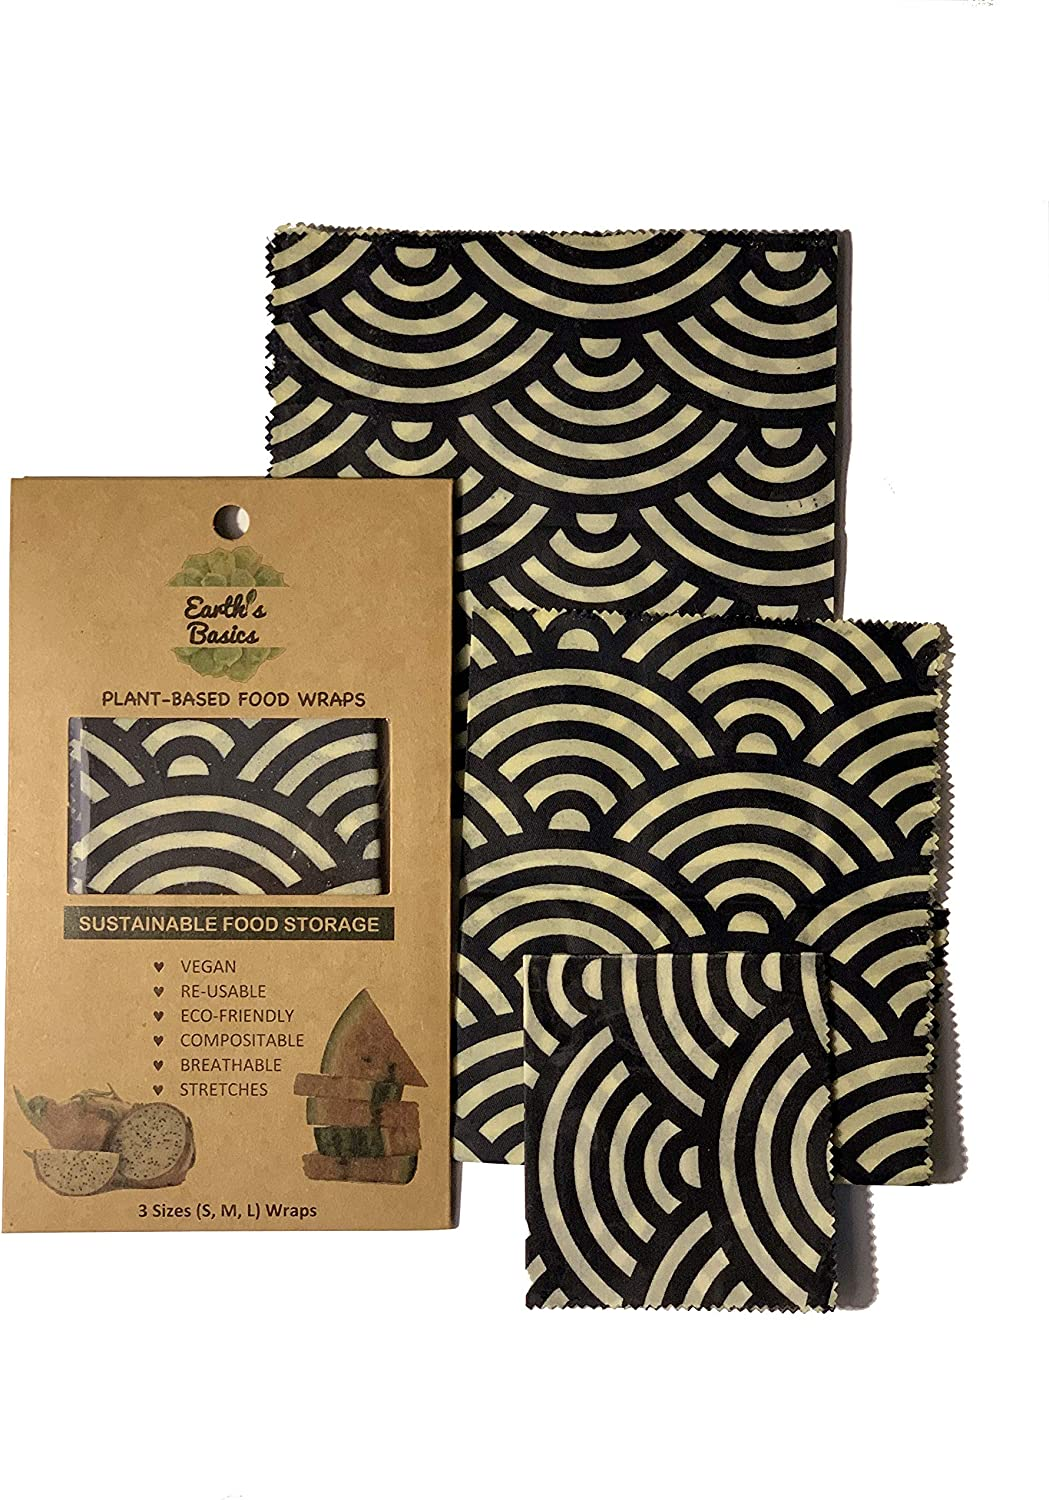 Reusable Organic Food Wraps, Assorted Design 3 Pack by Earth's Basics - Plant Based Food Wraps, Vegan, Non-Toxic, Biodegradable, Eco Friendly - 3 Assorted Size Wraps